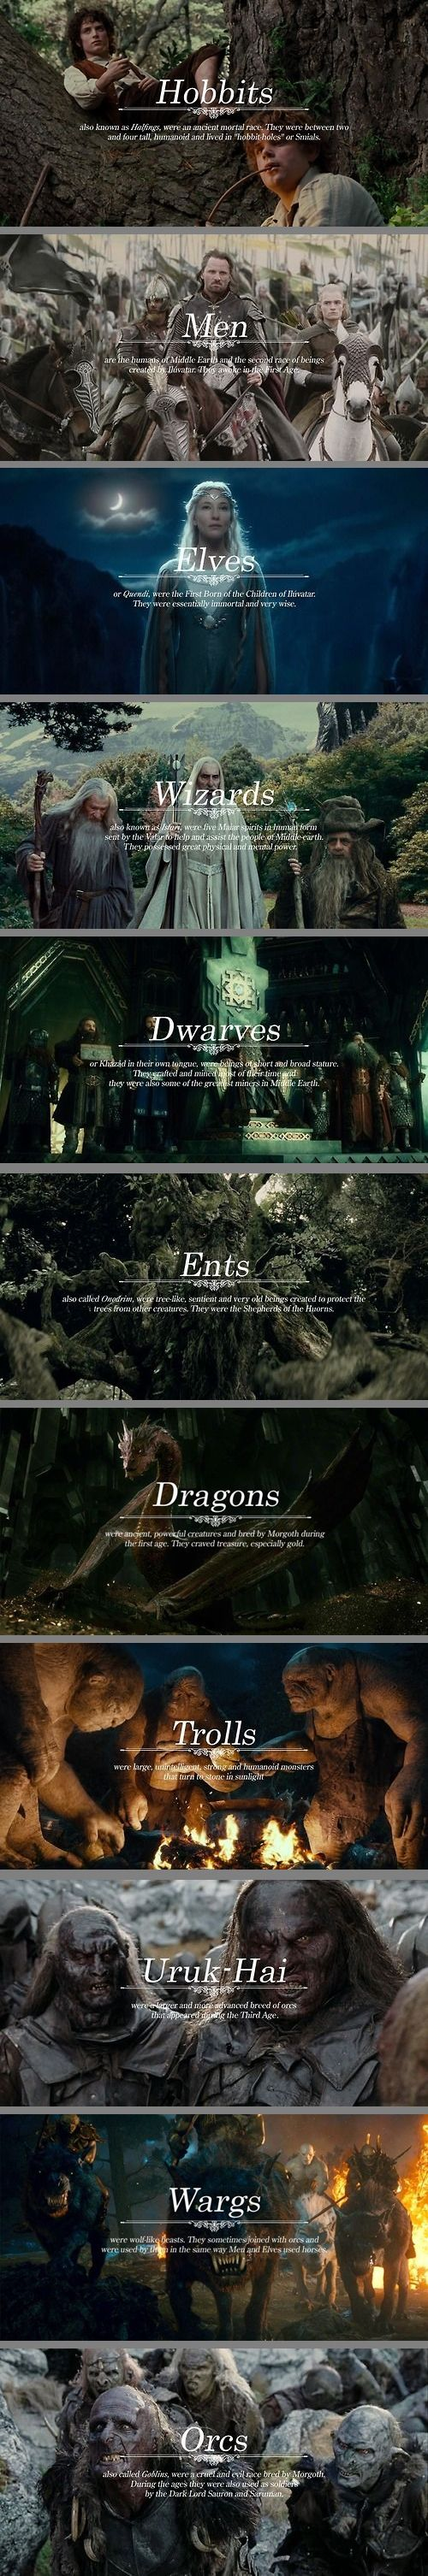 Races and Creatures of Middle Earth.  It's not all things elven, but it's pretty fantastic so I had to include this!